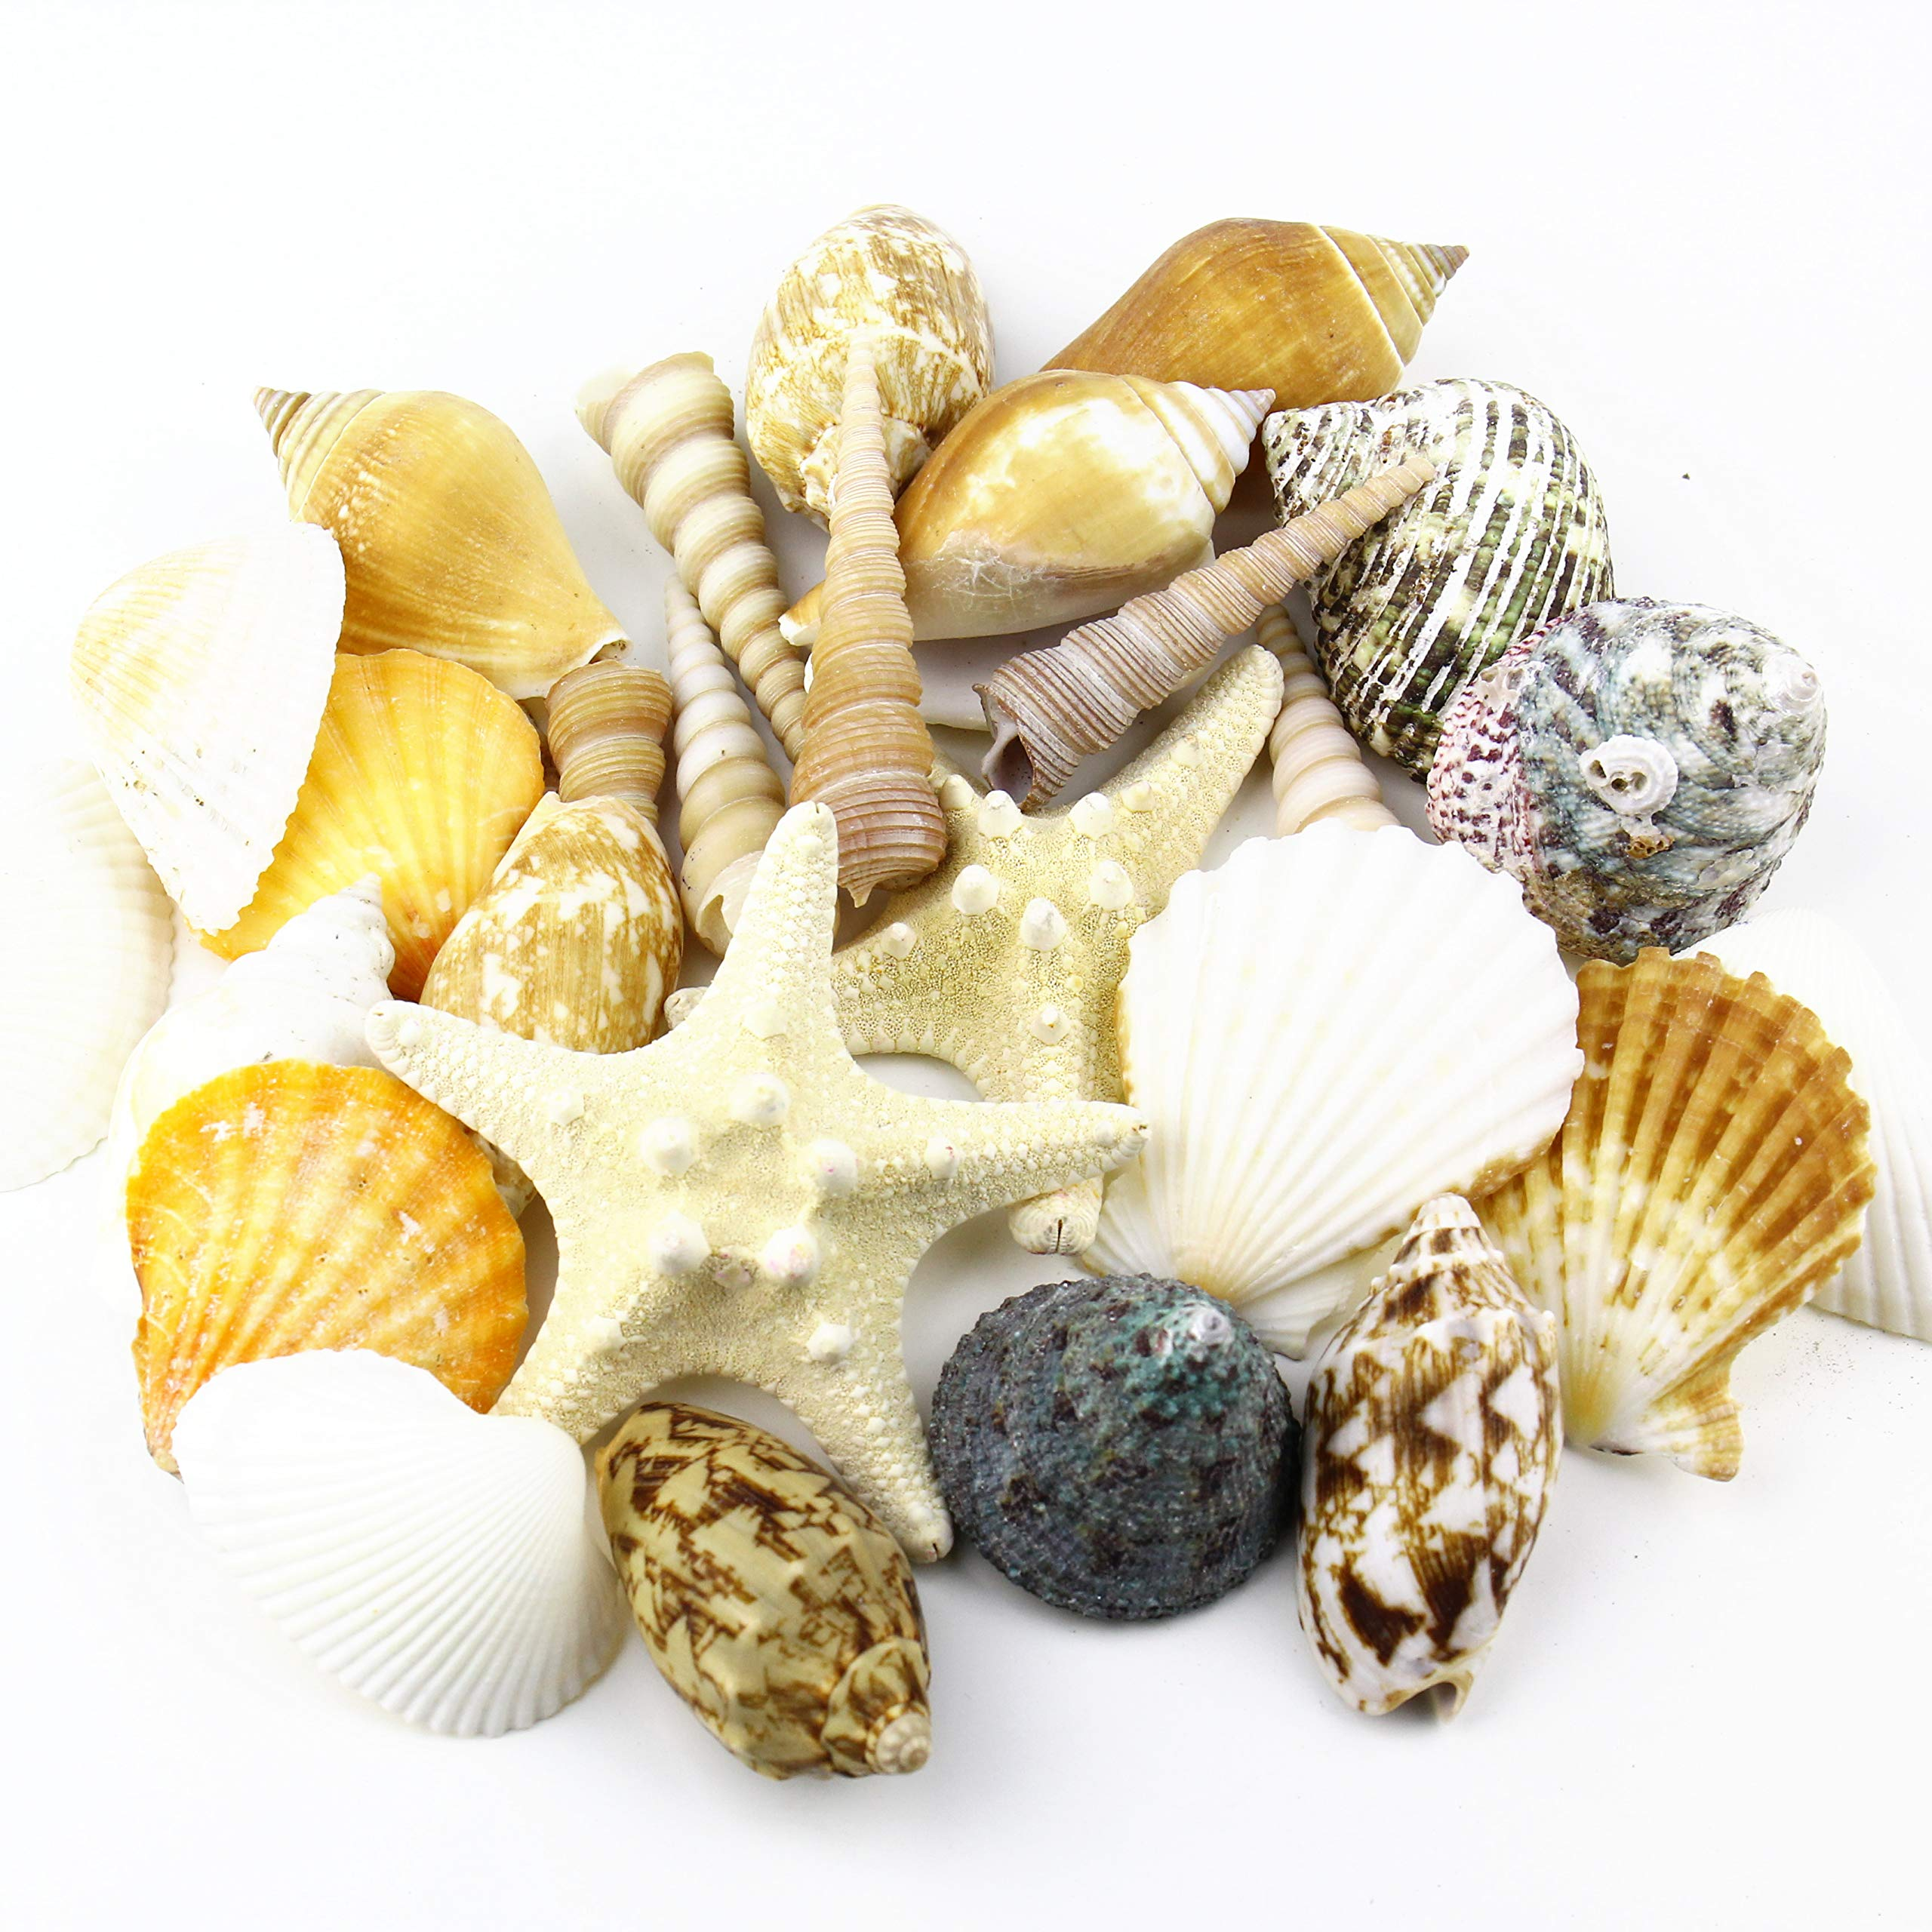 CYS EXCEL Approx 30 sea Shells with Starfish, Sized at 2'' to 4'', Mixed Beach Seashells, Arious Sizes Natural Seashells for Fish Tank, Vase Filler Sea Shells, Home Decorations, Wedding Décor by CYS EXCEL